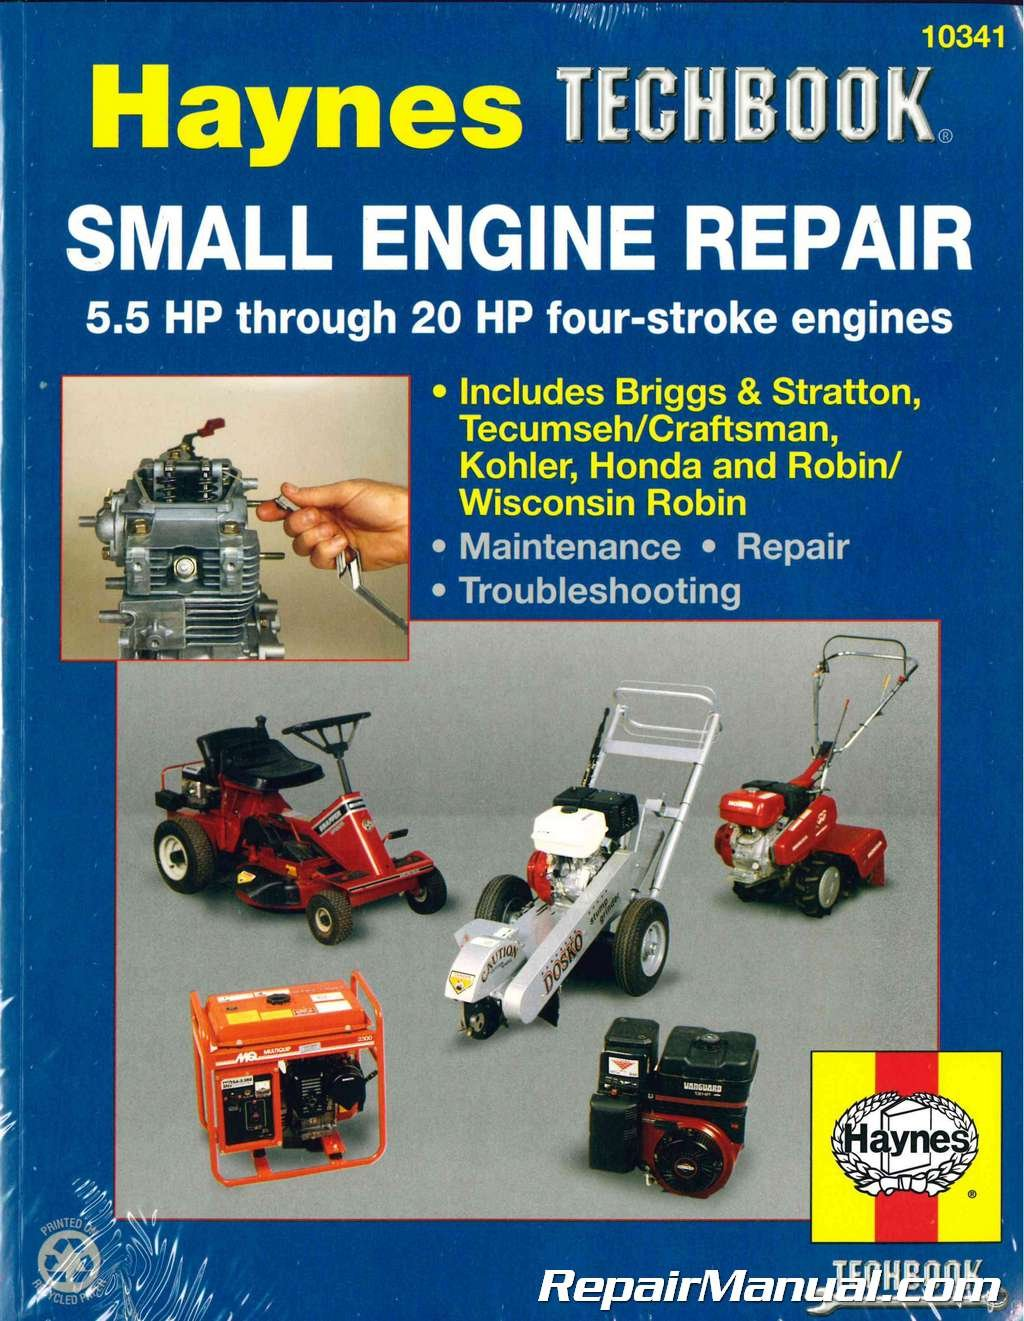 H10341 Haynes Small Engine Repair Haynes Techbook 5.5 HP through 20 HP:  Manufacturer: Amazon.com: Books